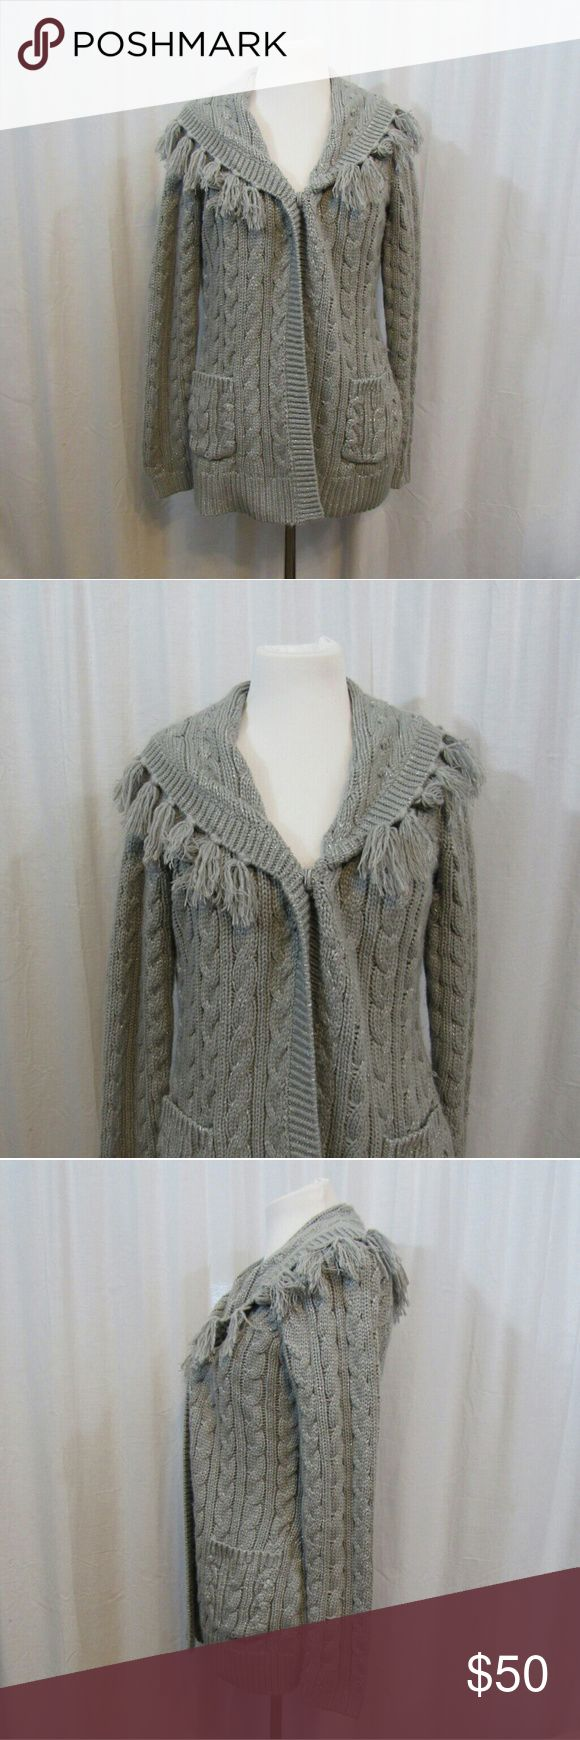 "Chico's Additions Gray Silver Cardigan 0 M Brand: Additions by Chico's Size: 0 Material: 84% Acrylic 10% Polyester 6% Metallic Care Instructions: Hand Wash  Bust: 42"" Sleeves: 24"" Length: 27""  All clothes are in excellent used condition. No tears, stains or holes unless otherwise I noted.   P86 Chico's Sweaters Cardigans"